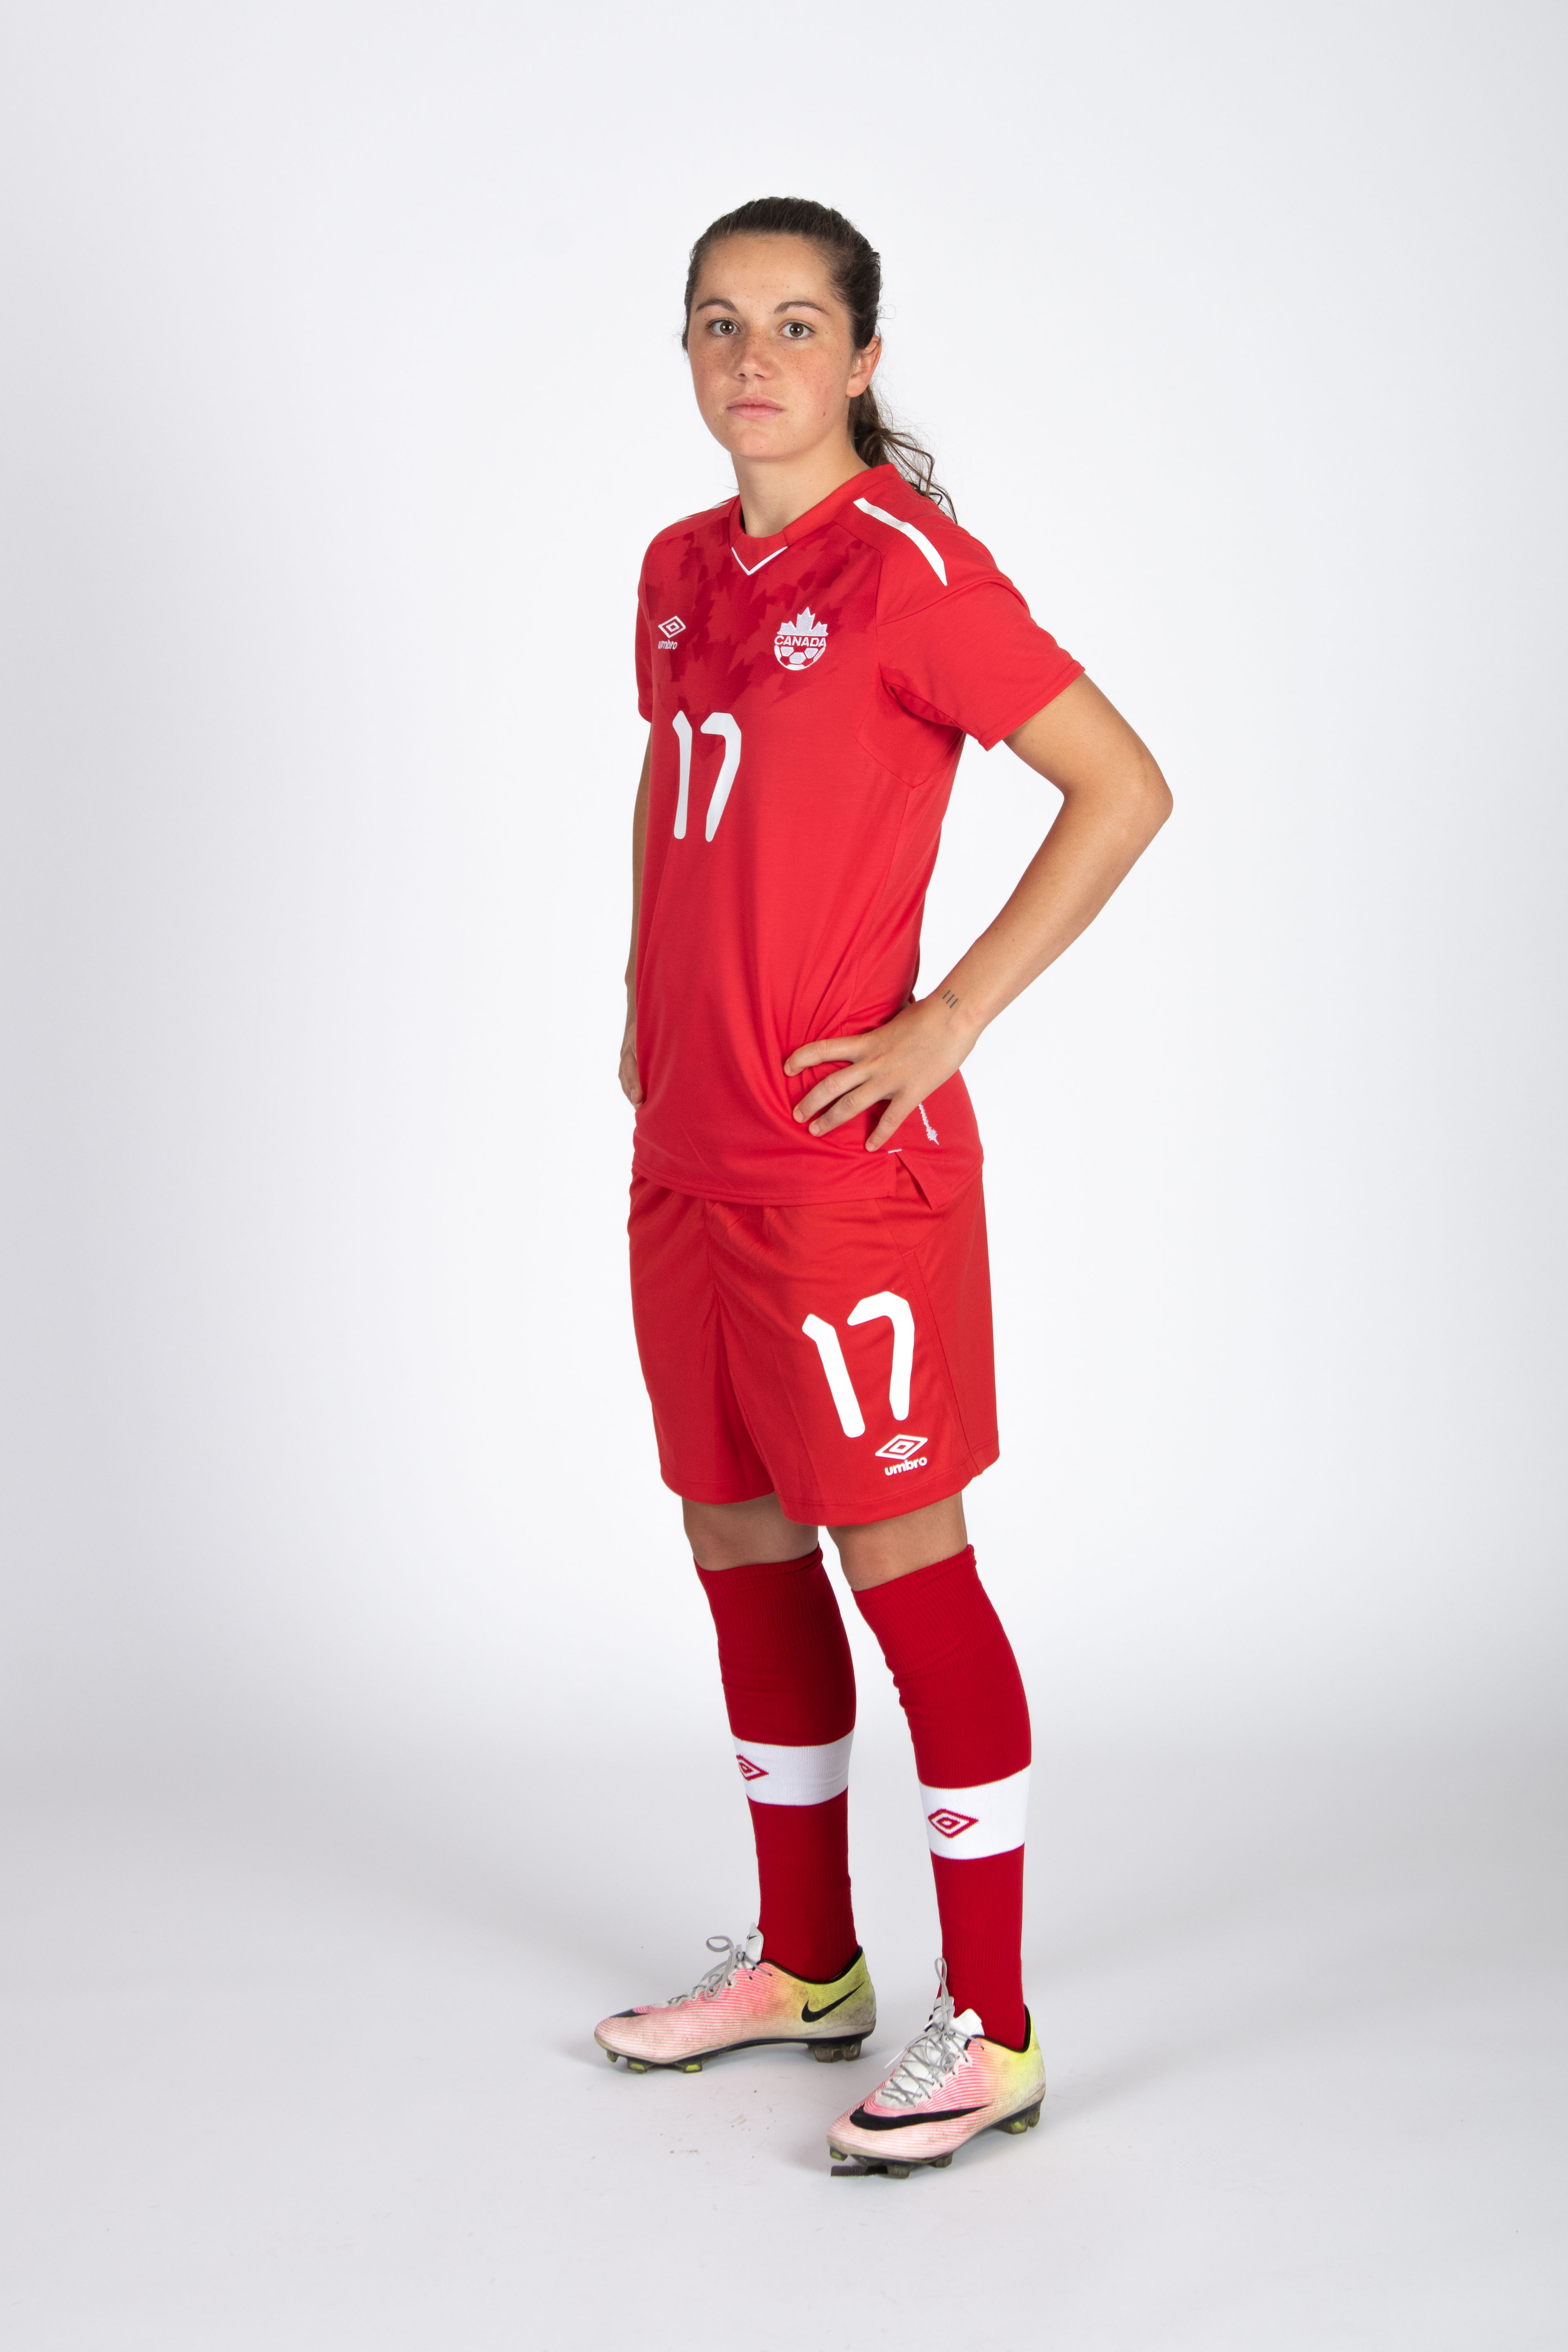 20180604_CANWNT_Fleming_byBazyl24